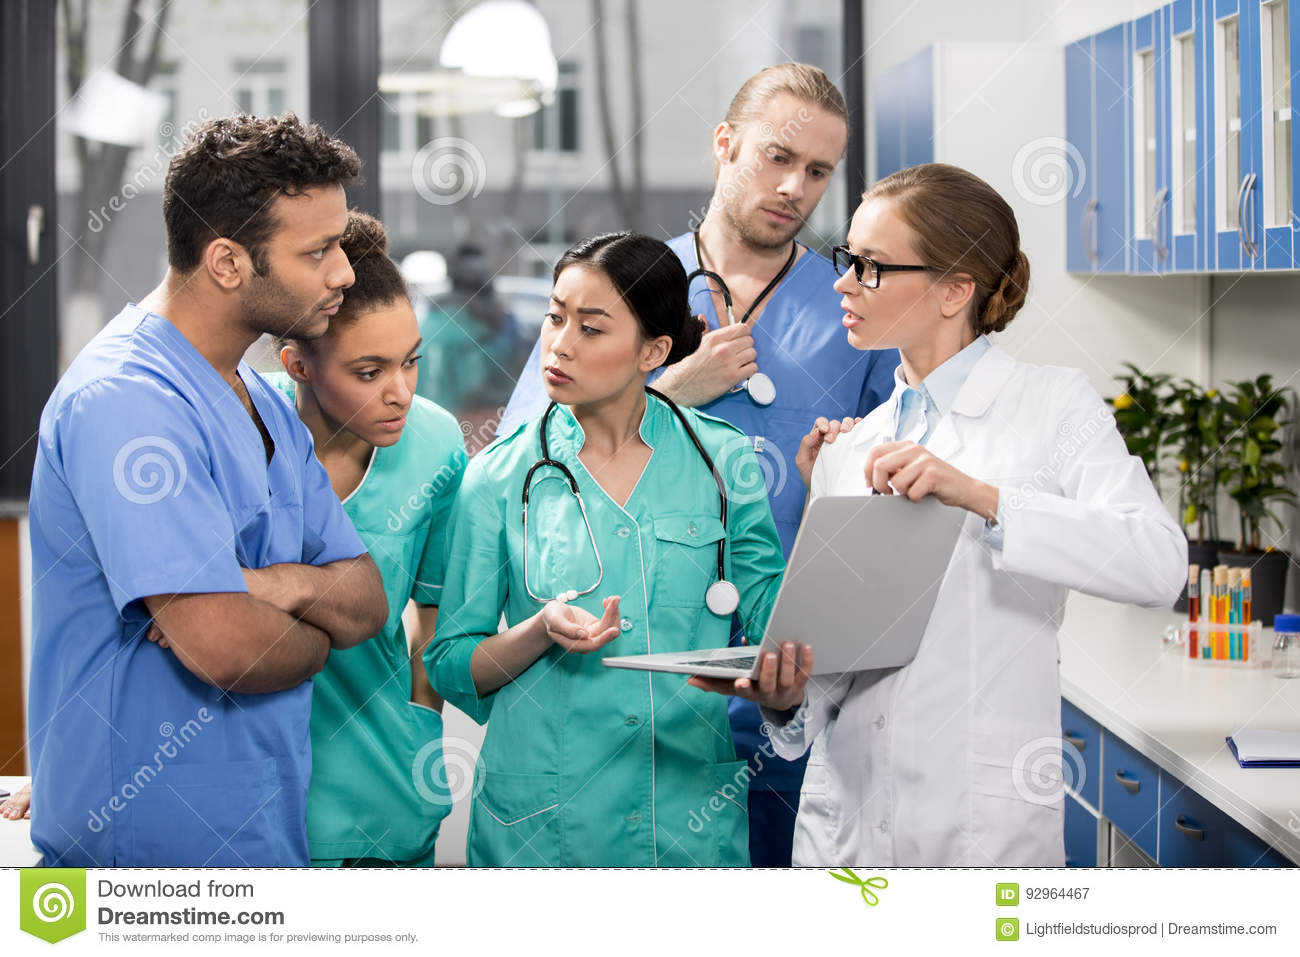 Medical workers using laptop during discussion in lab